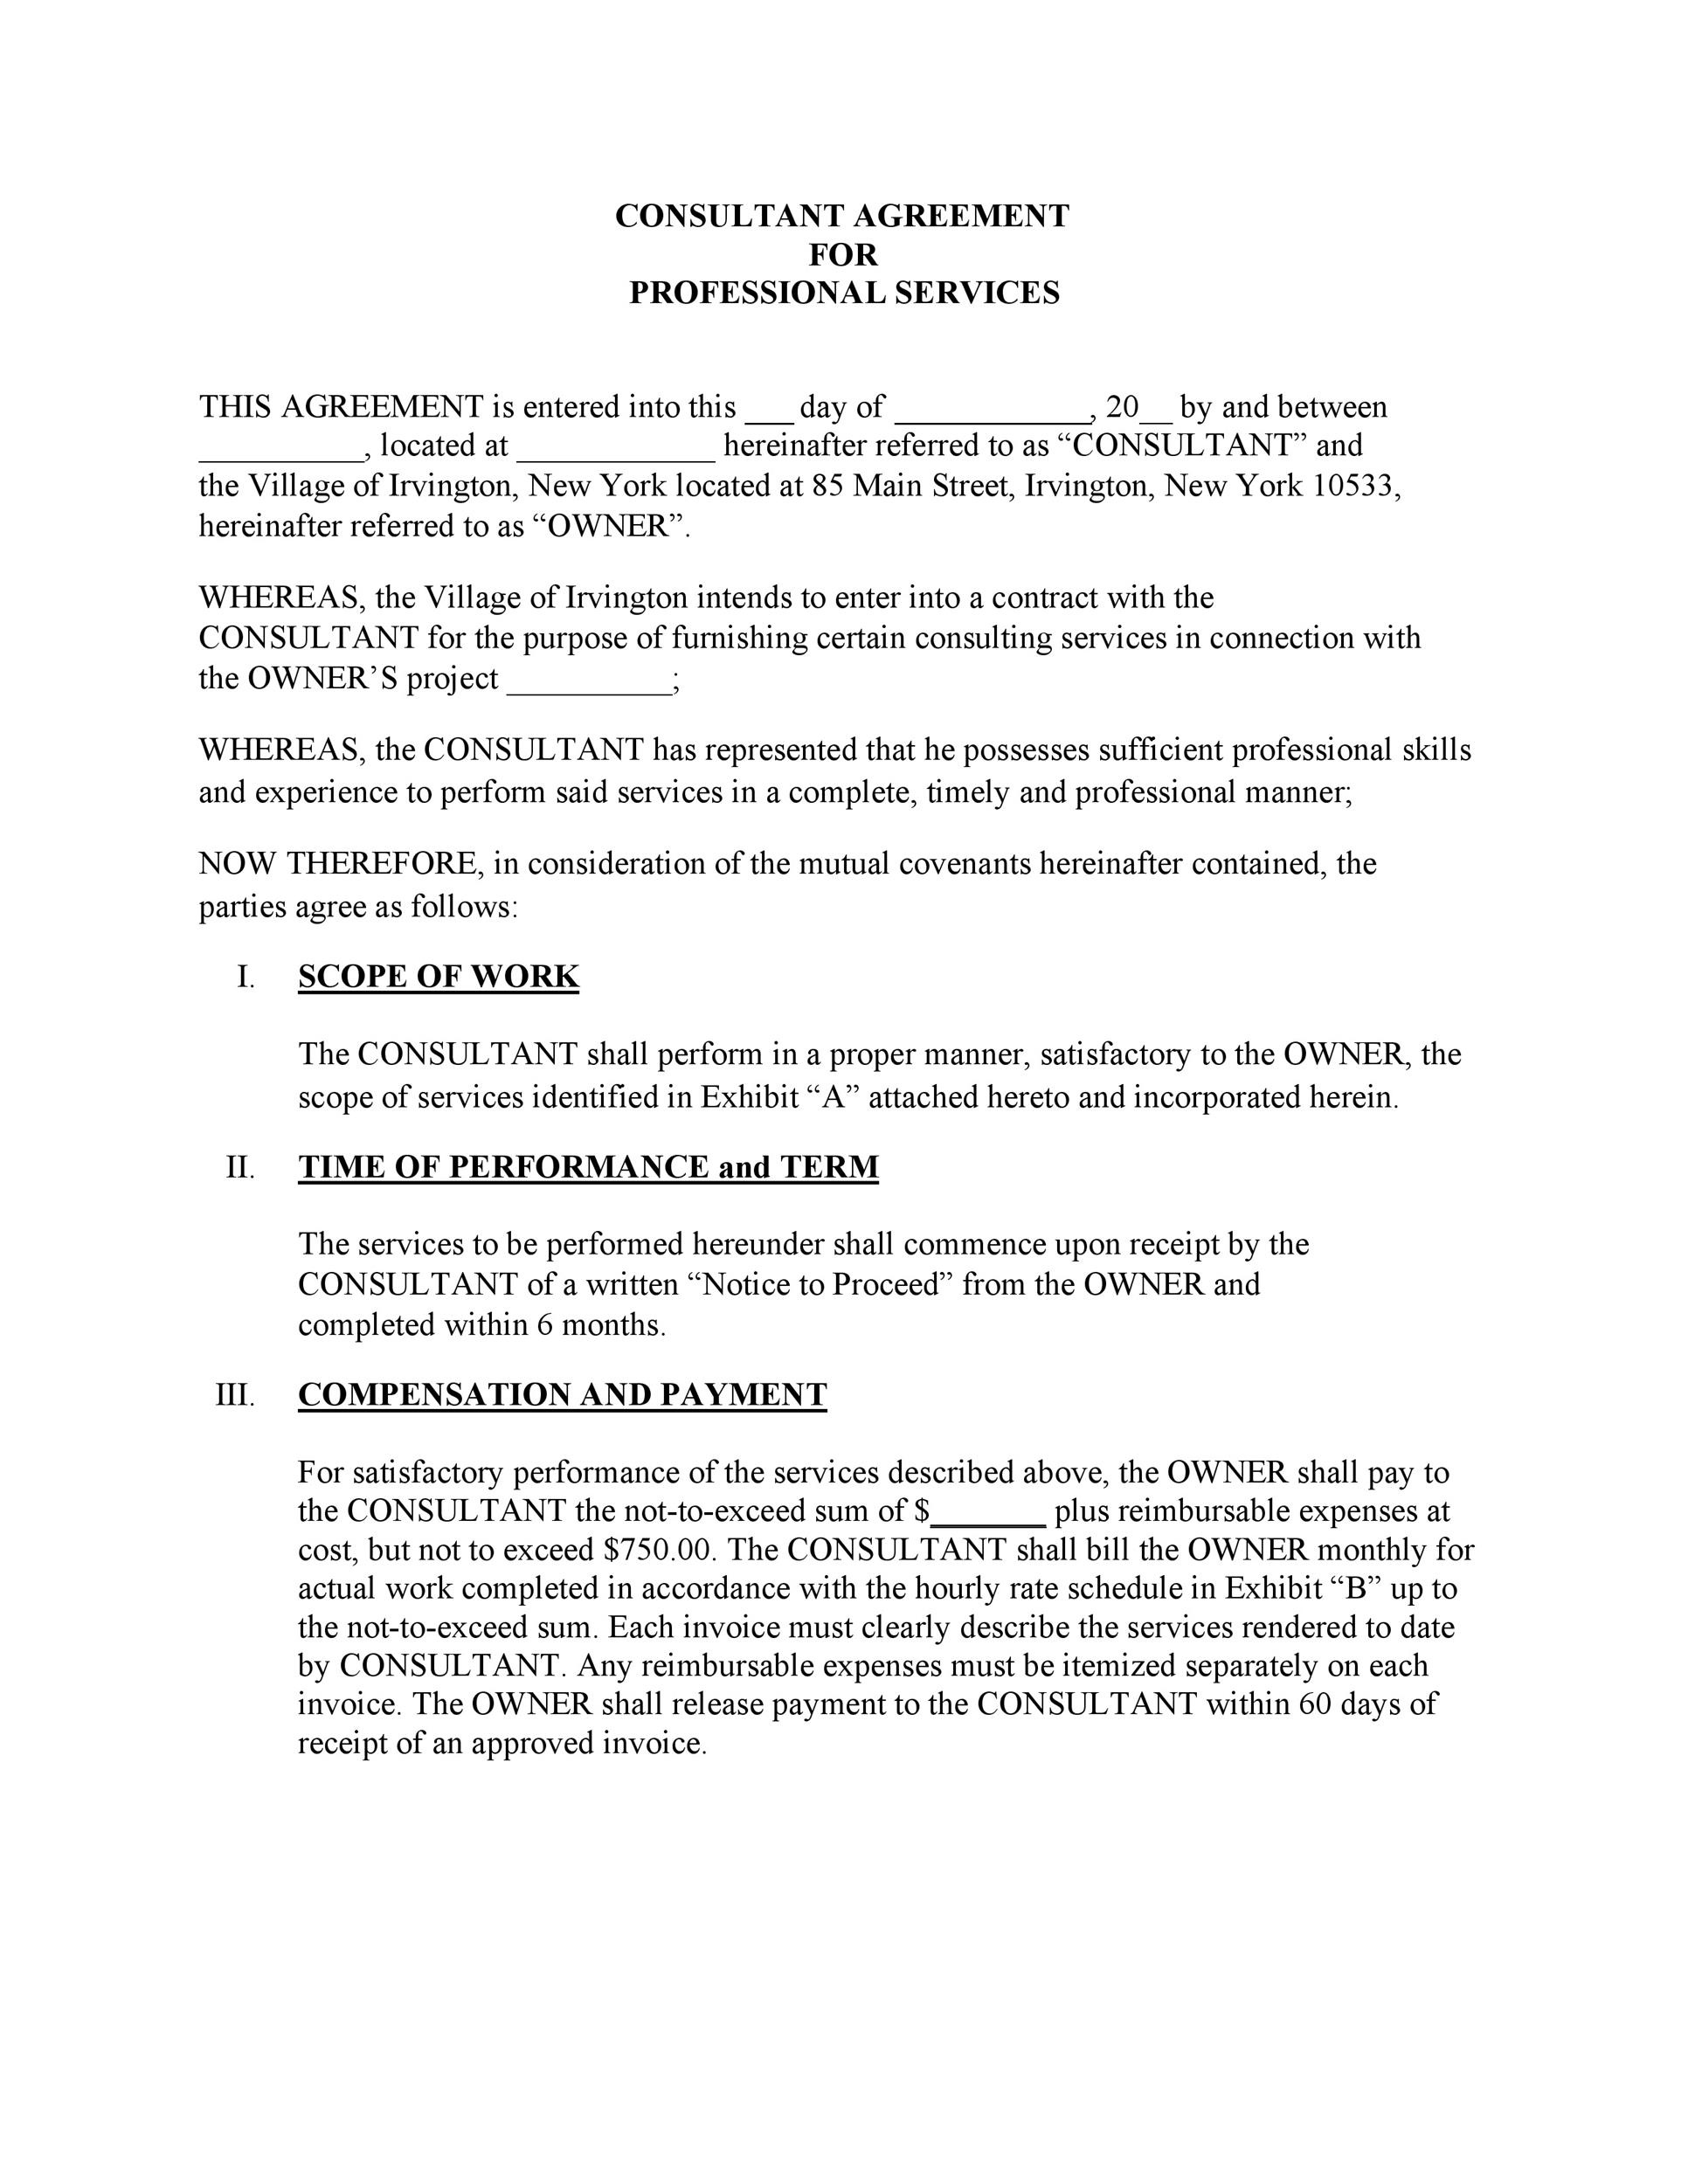 50+ Professional Service Agreement Templates  Contracts - service agreement